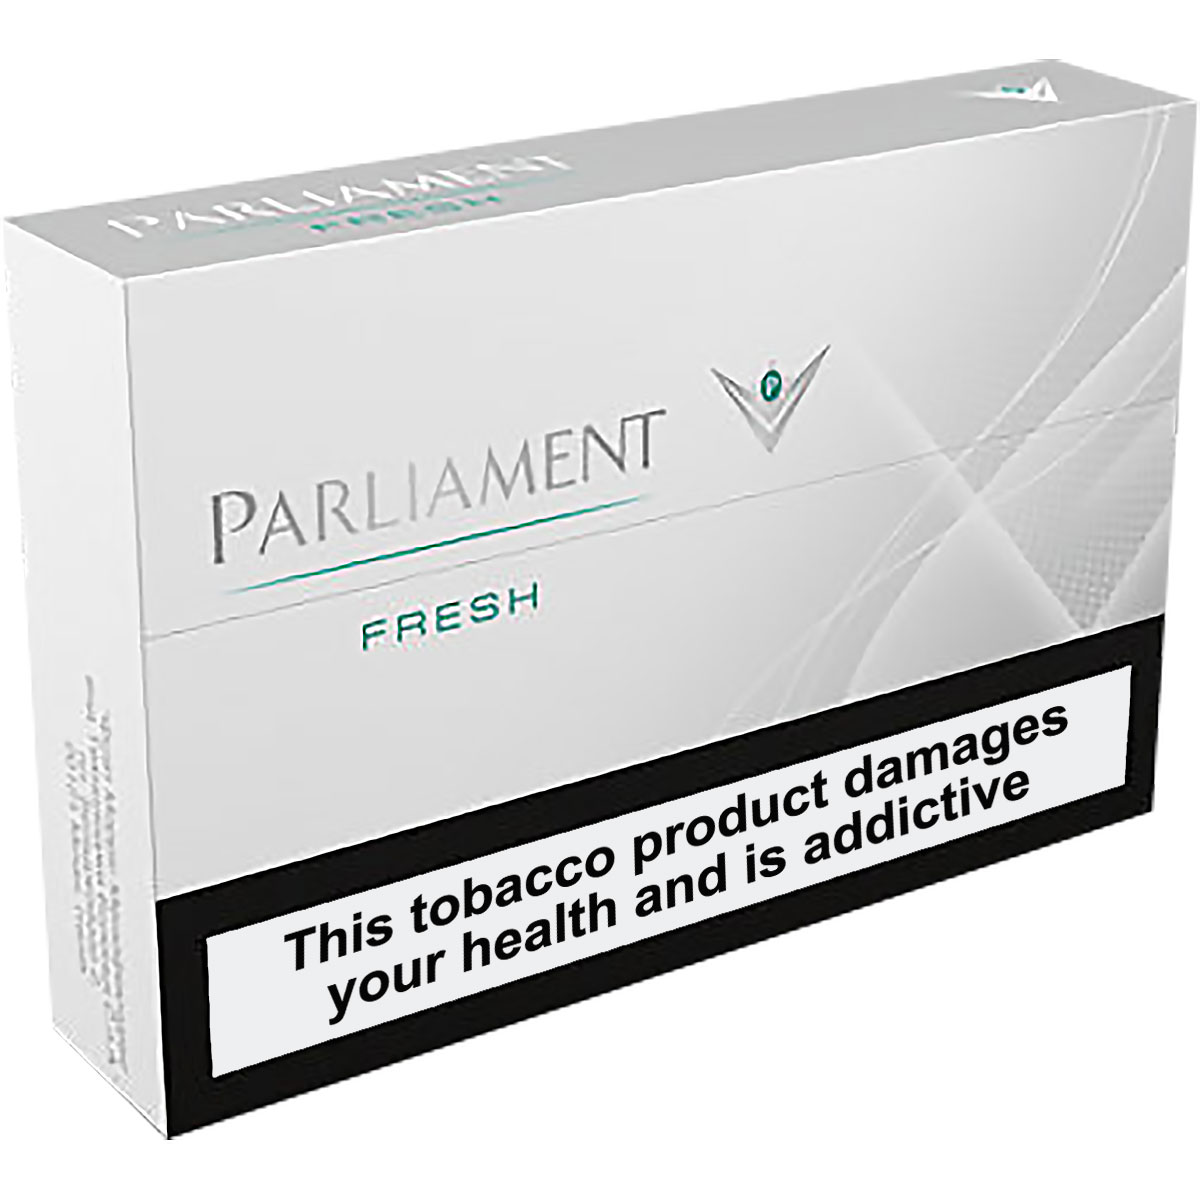 Parliament - Fresh Limited Edition (1 pack)